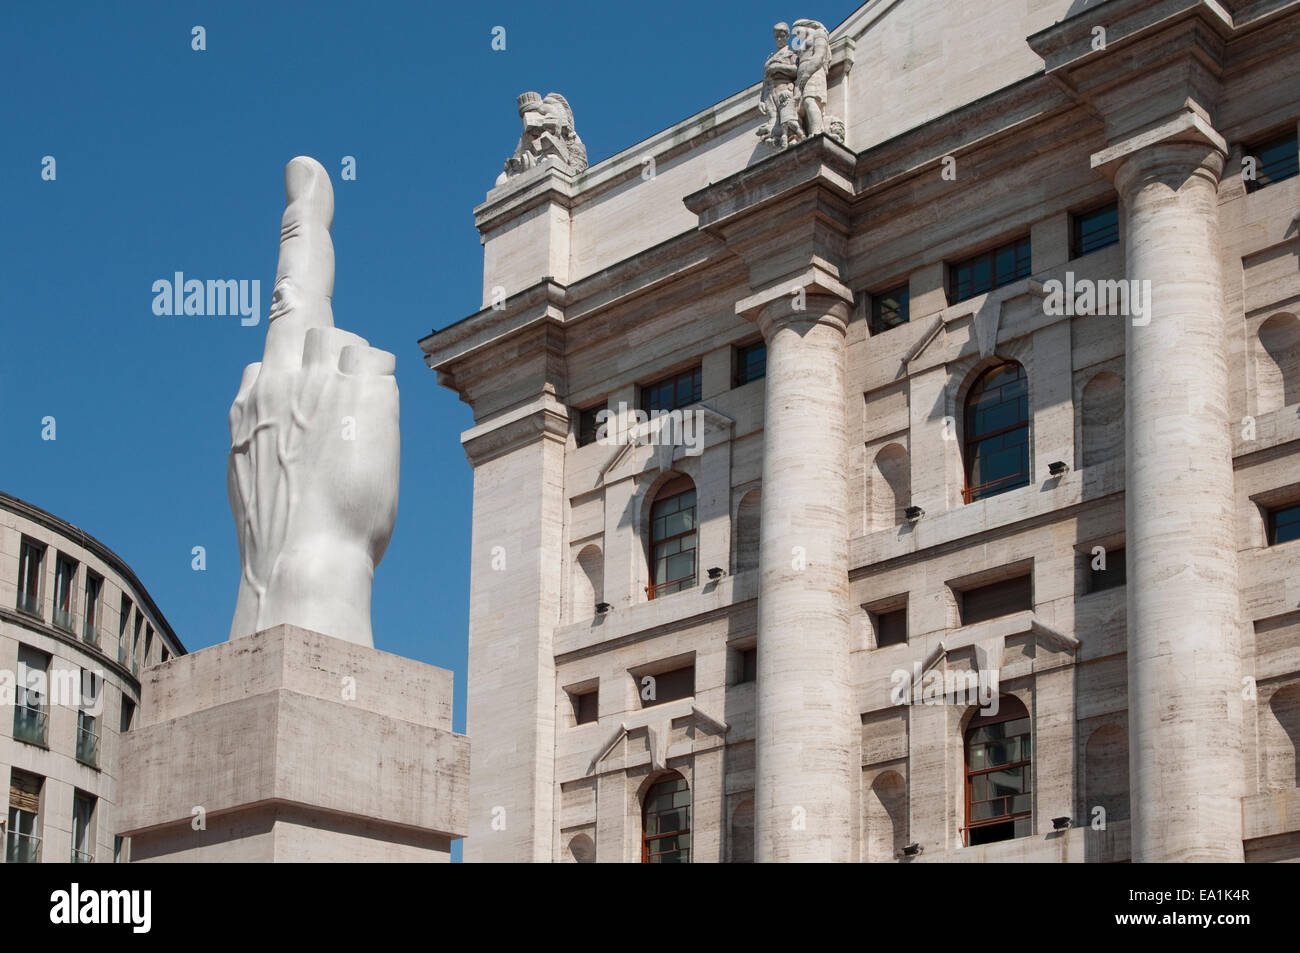 2787b967e2 Italy, Lombardy, Milan, Piazza Affari Square, Stock Exchange and Maurizio  Cattelan Sculpture.